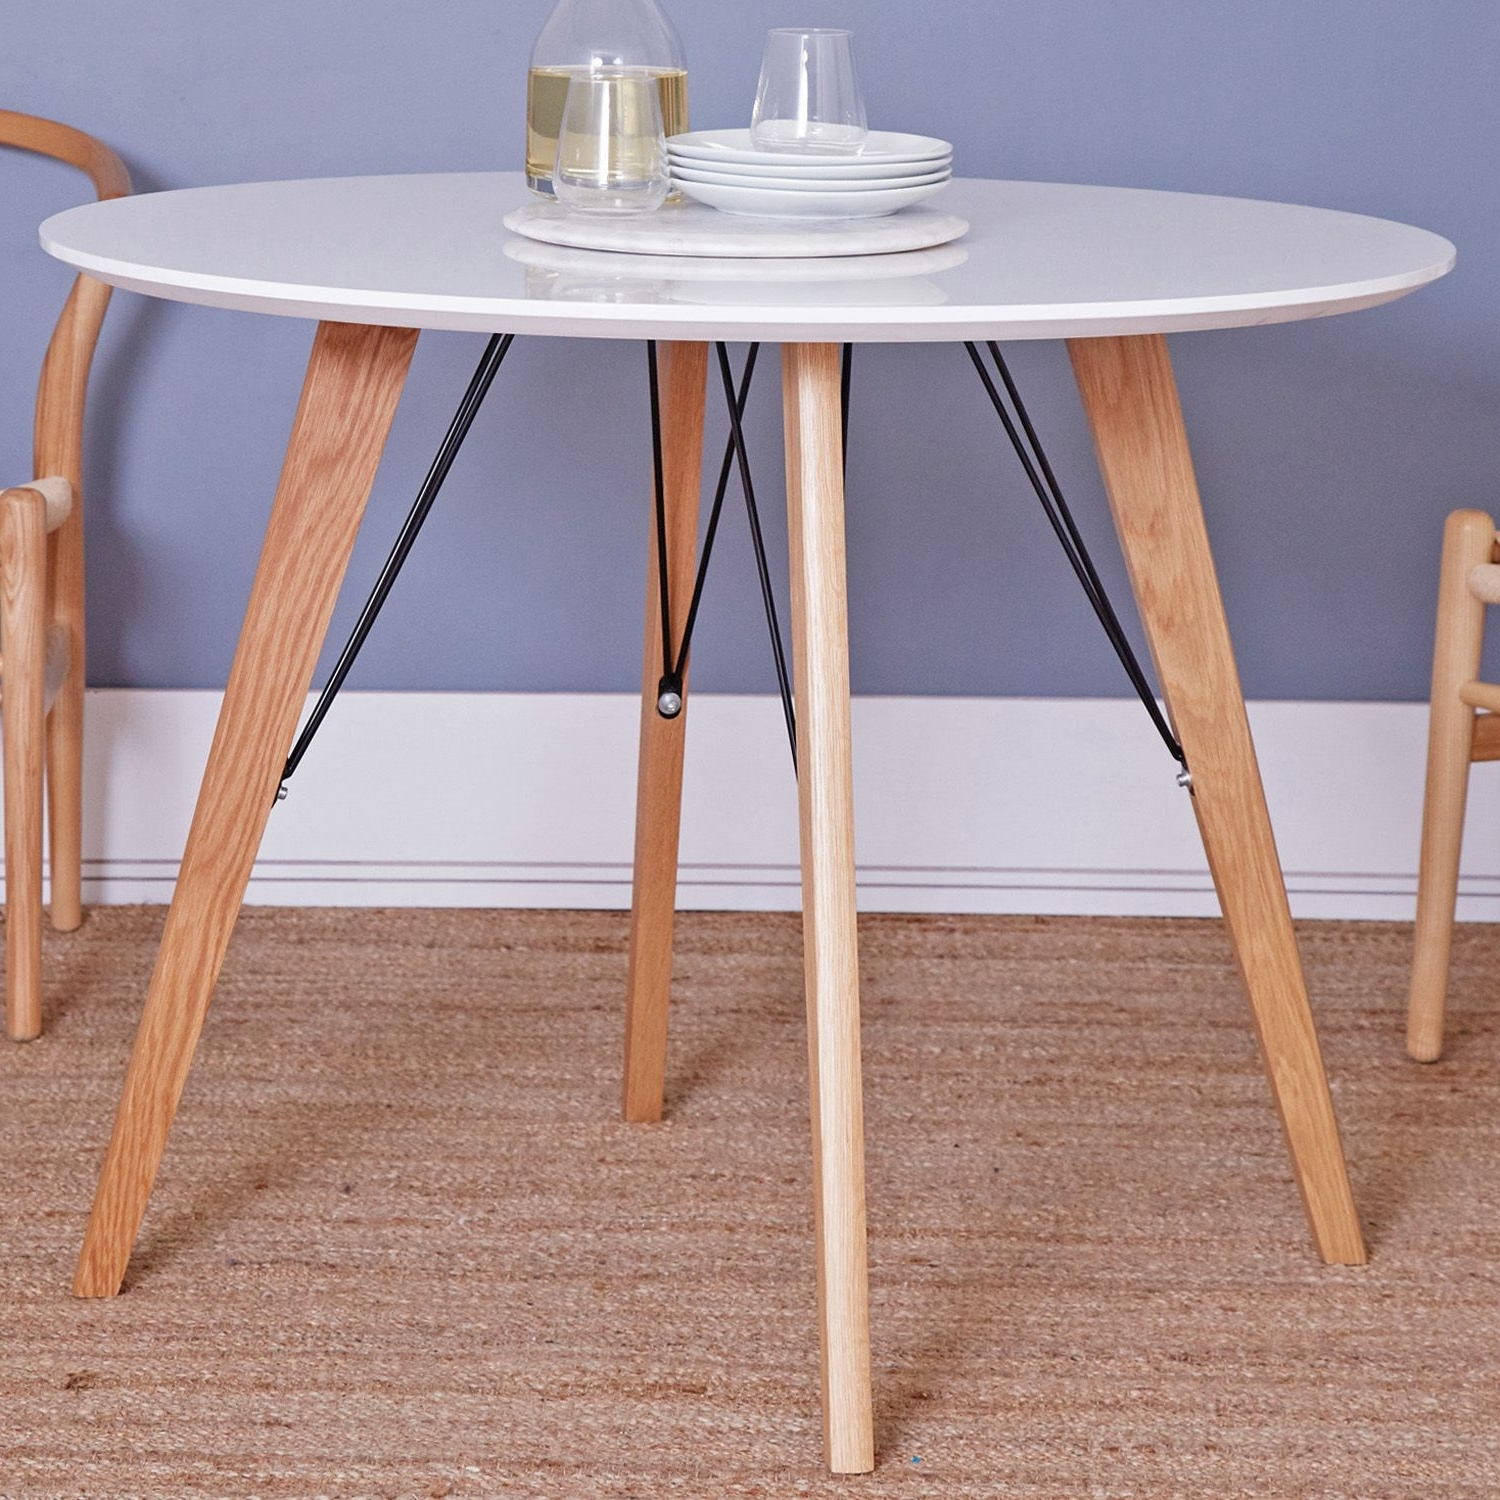 Most Recently Released Dining Tables With White Legs And Wooden Top Pertaining To Estelle Round Dining Table With Ash Legs (View 19 of 25)